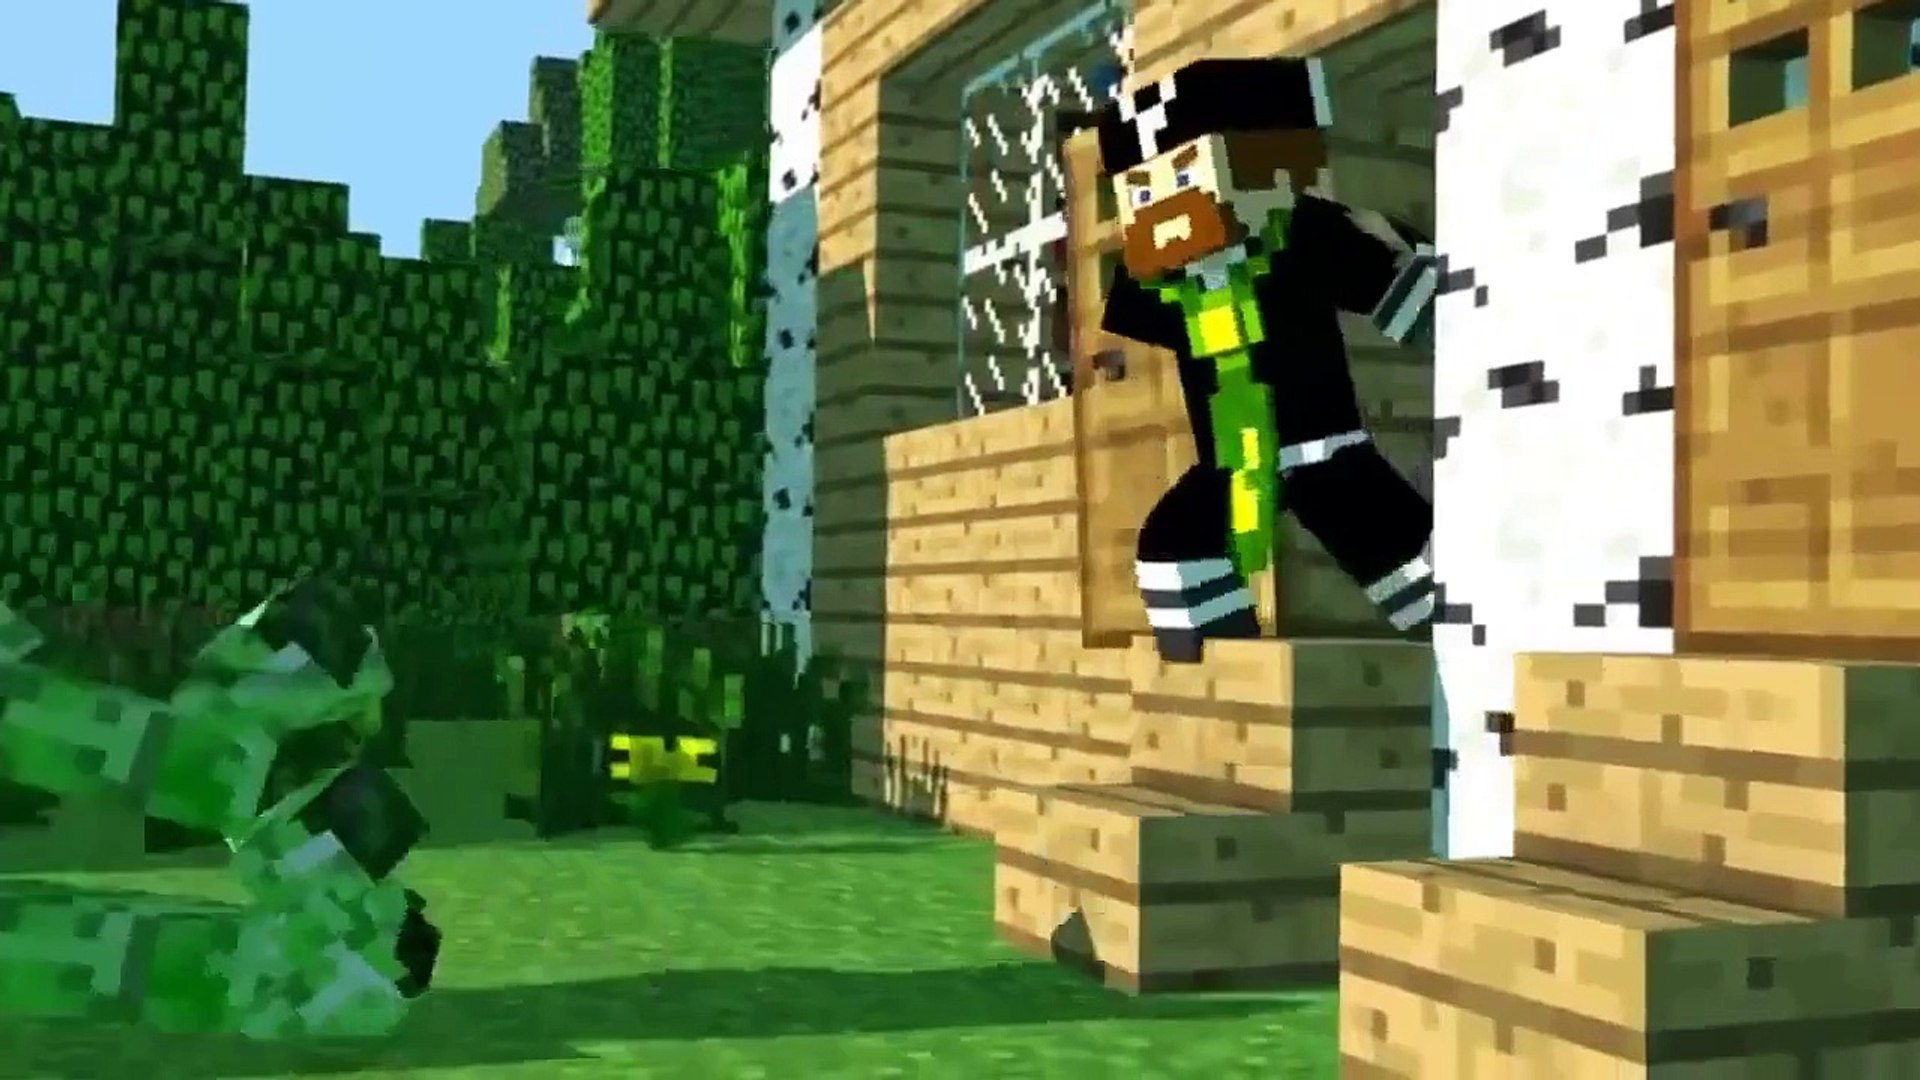 Top Minecraft Songs Parodies 2014 Hunger Games Song' A Minecraft Parody of Decisions